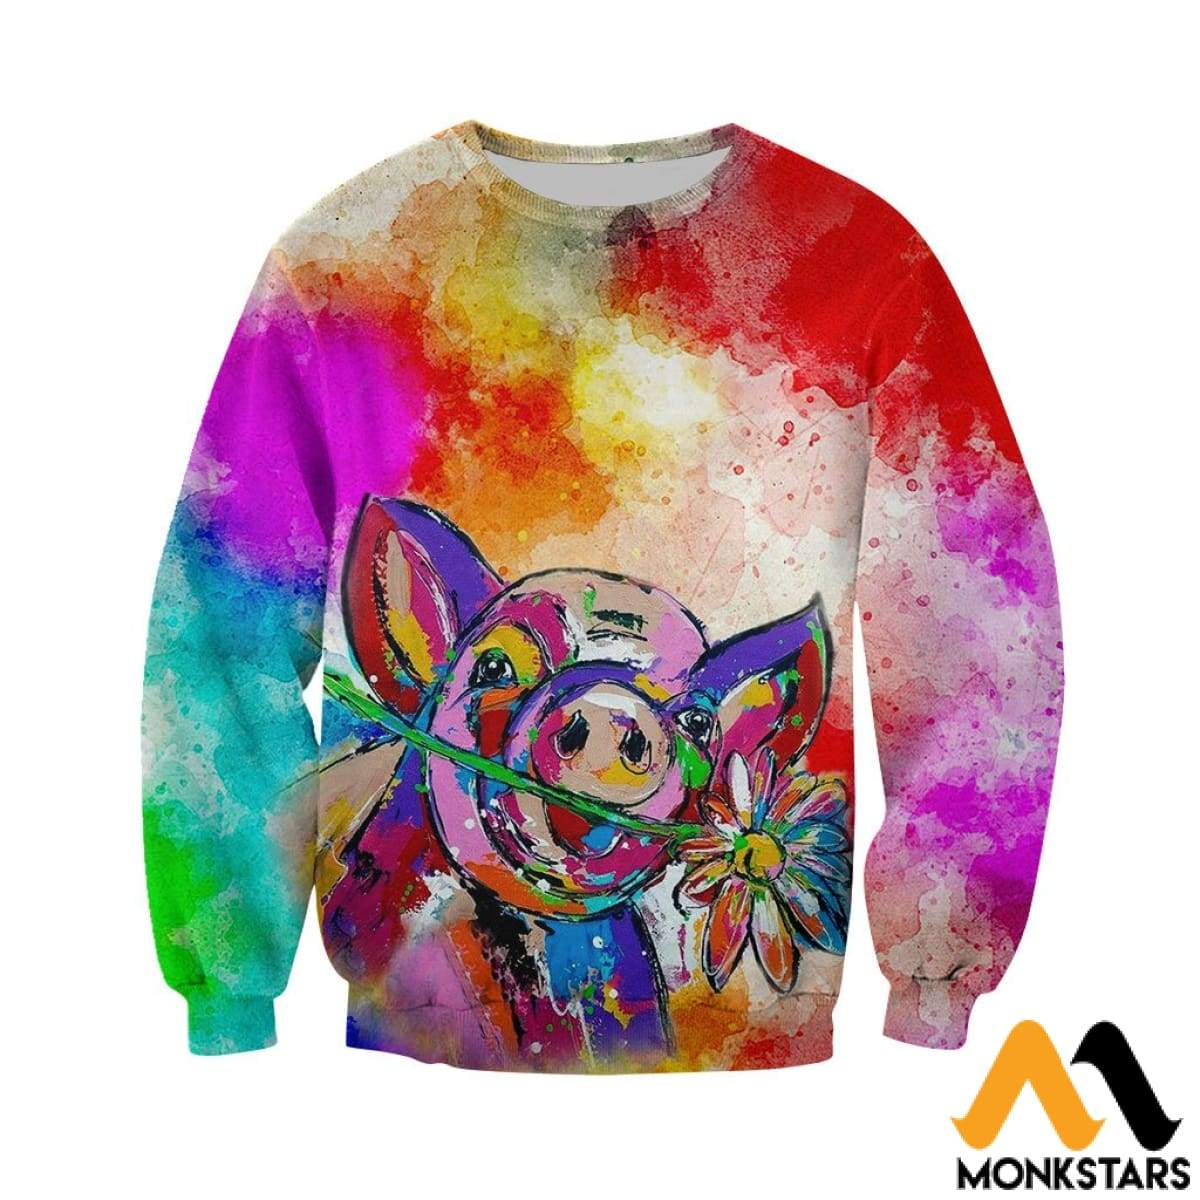 f5a4d1c7a42c 3D All Over Printed Beautiful Pig Shirts And Shorts - Monkstars Inc.